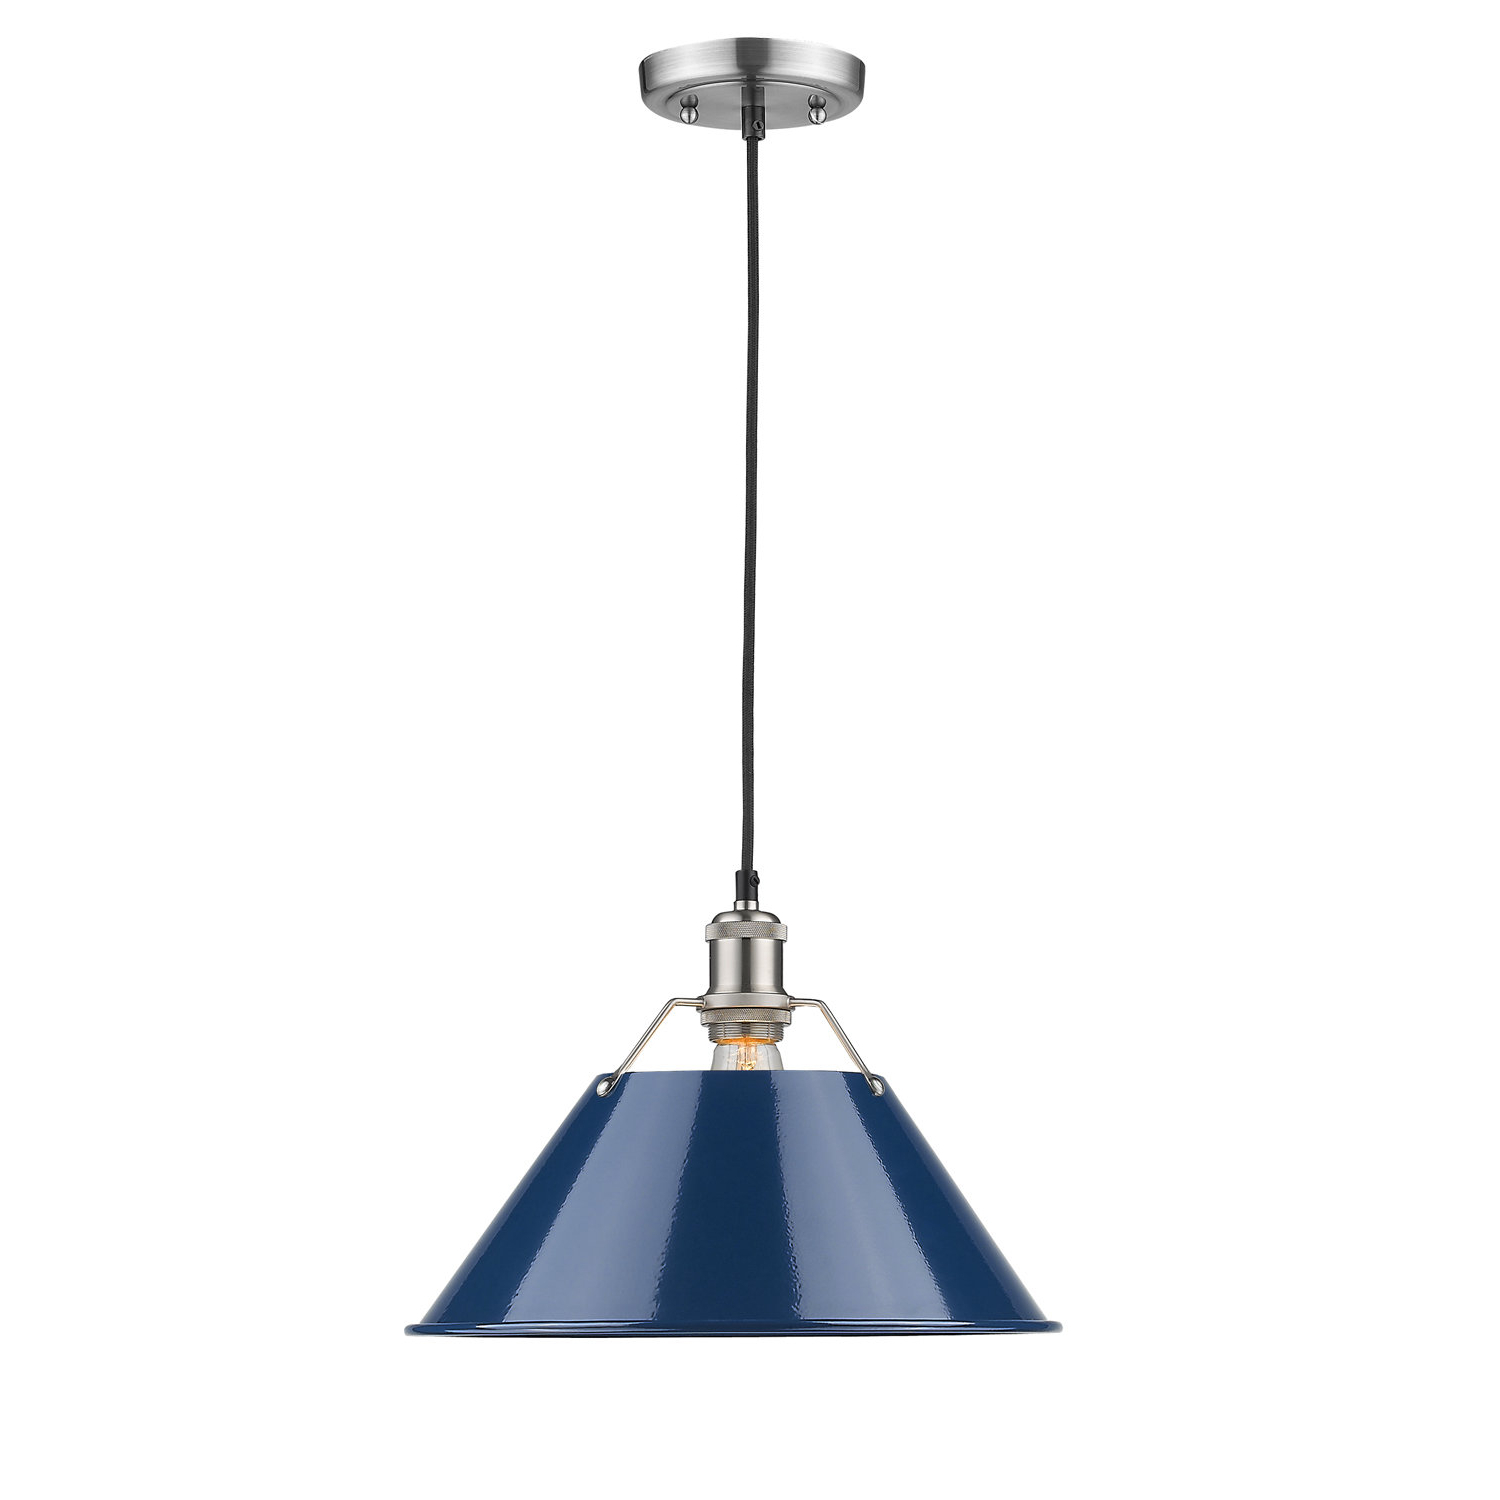 Preferred Weatherford 1 Light Single Cone Pendant With Nadeau 1 Light Single Cone Pendants (View 16 of 20)